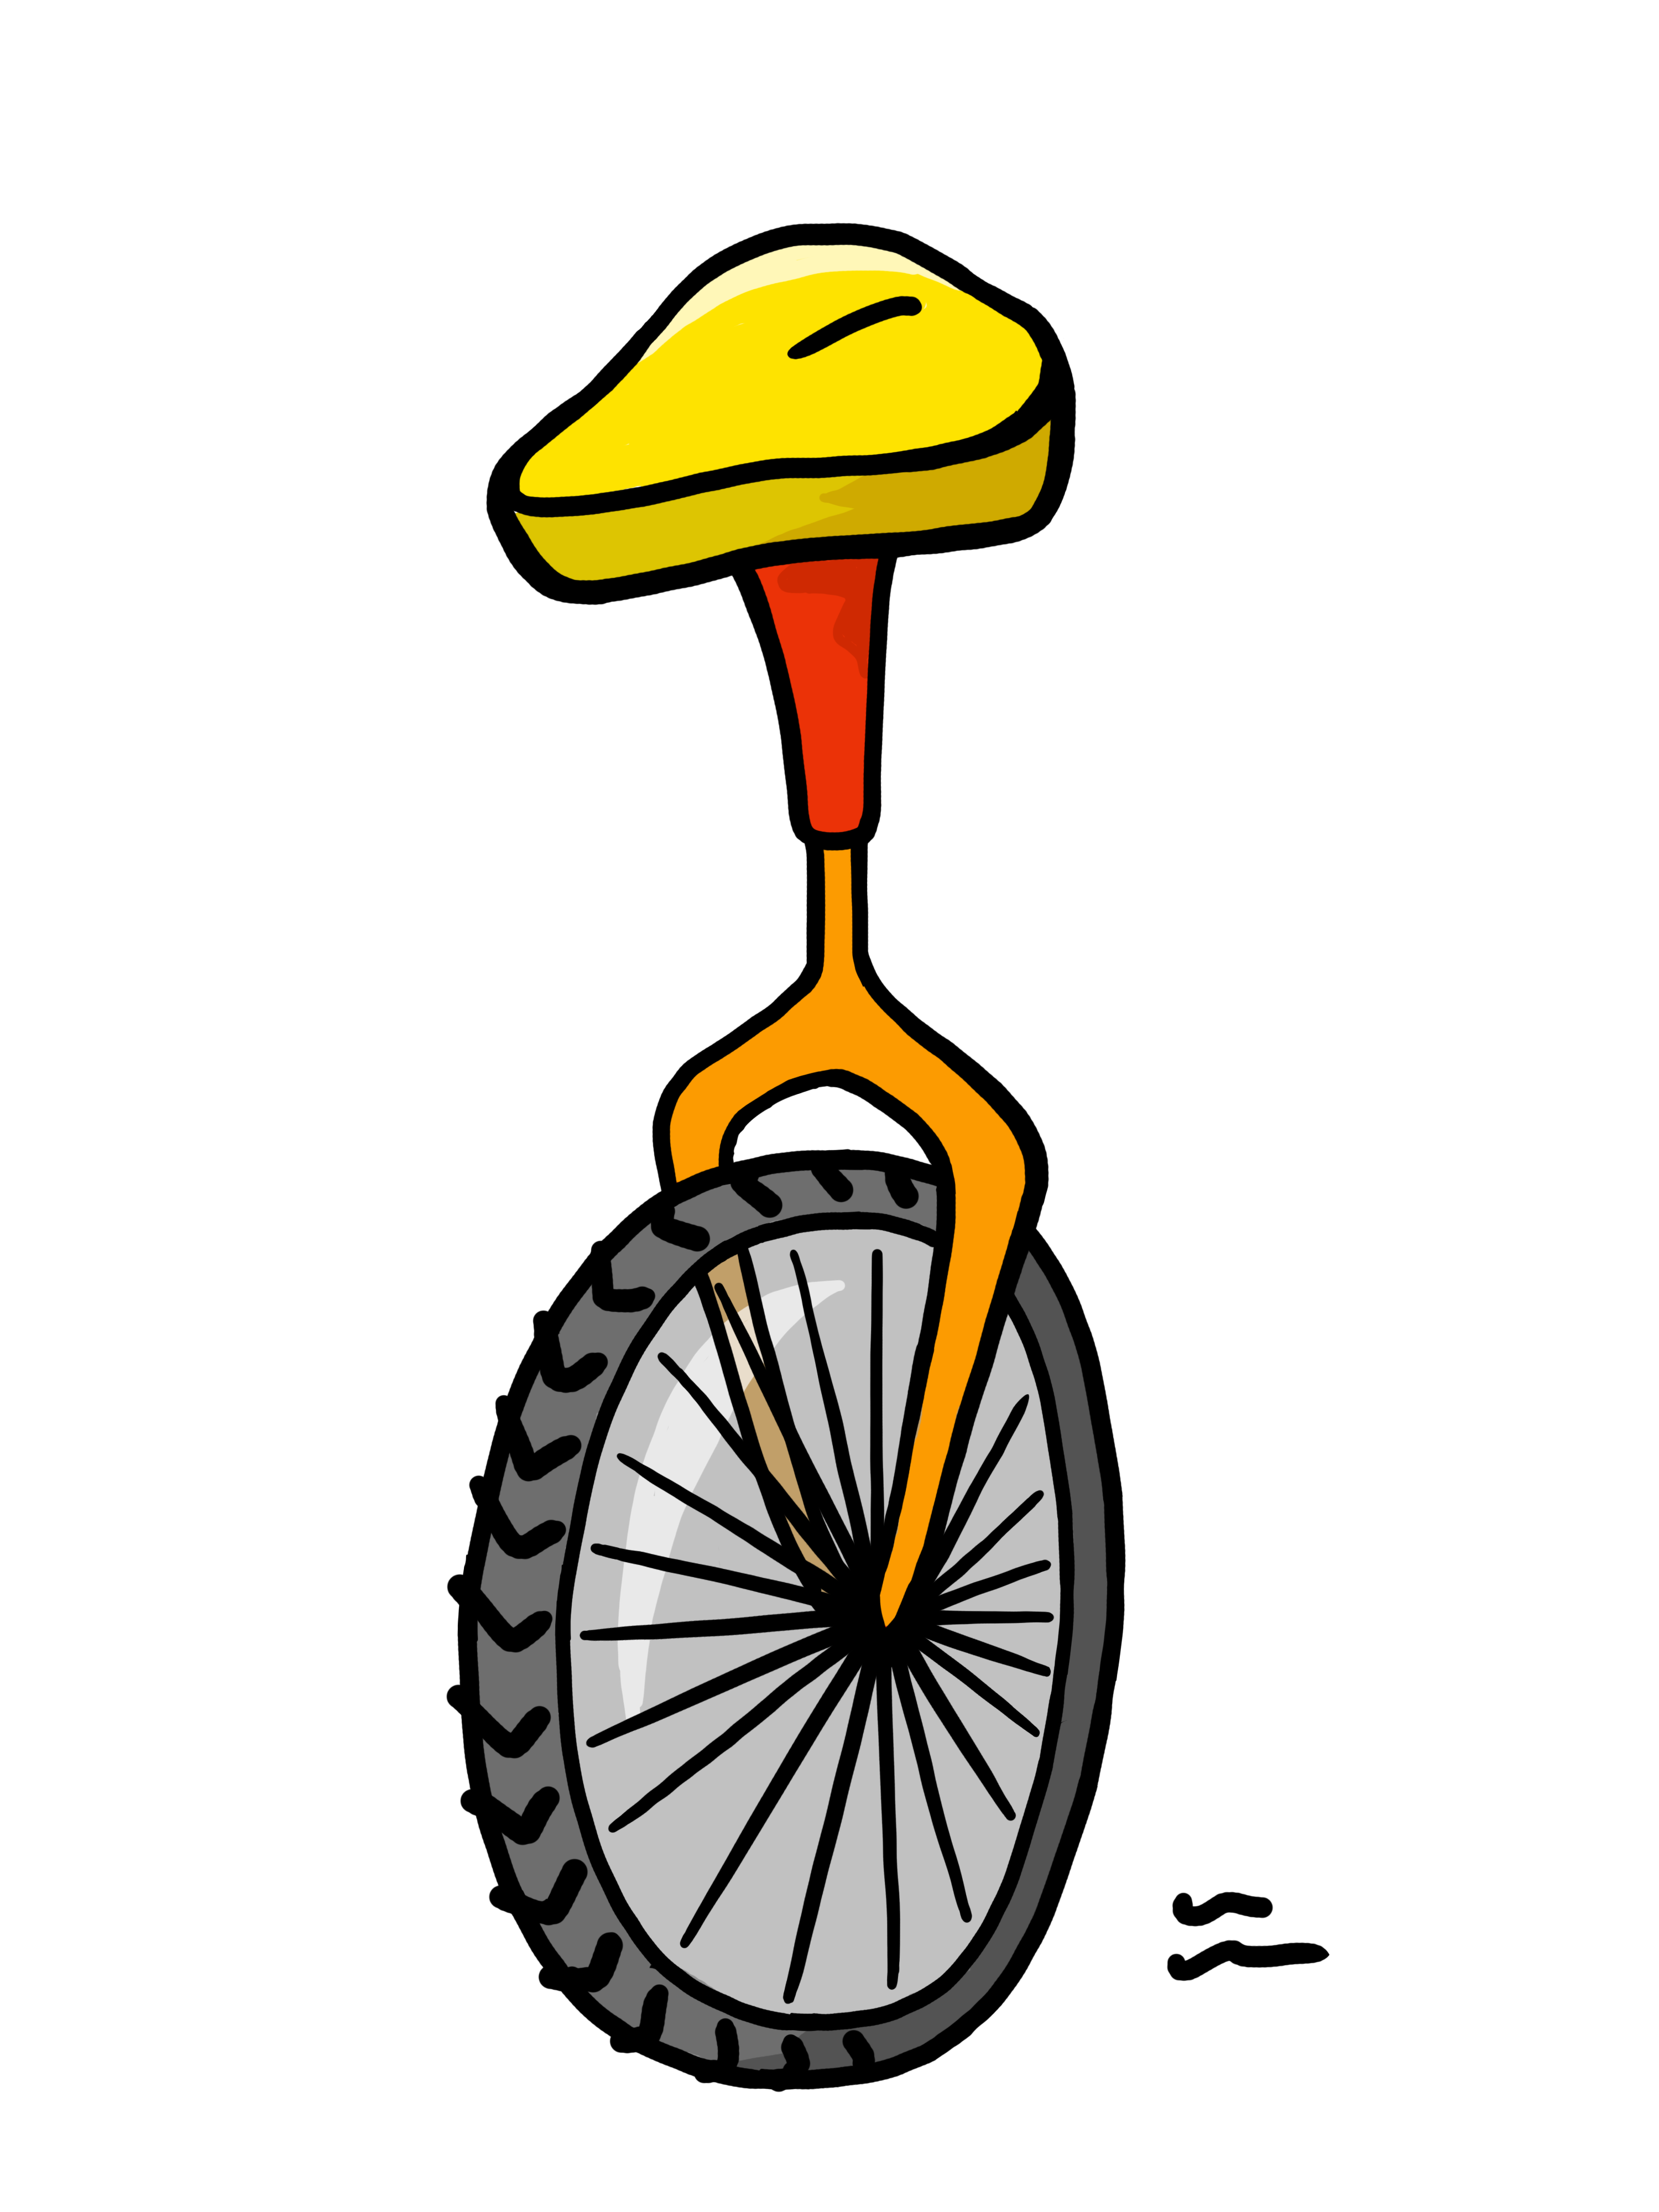 Unicycle clipart png transparent stock Unicycle Clipart free image png transparent stock